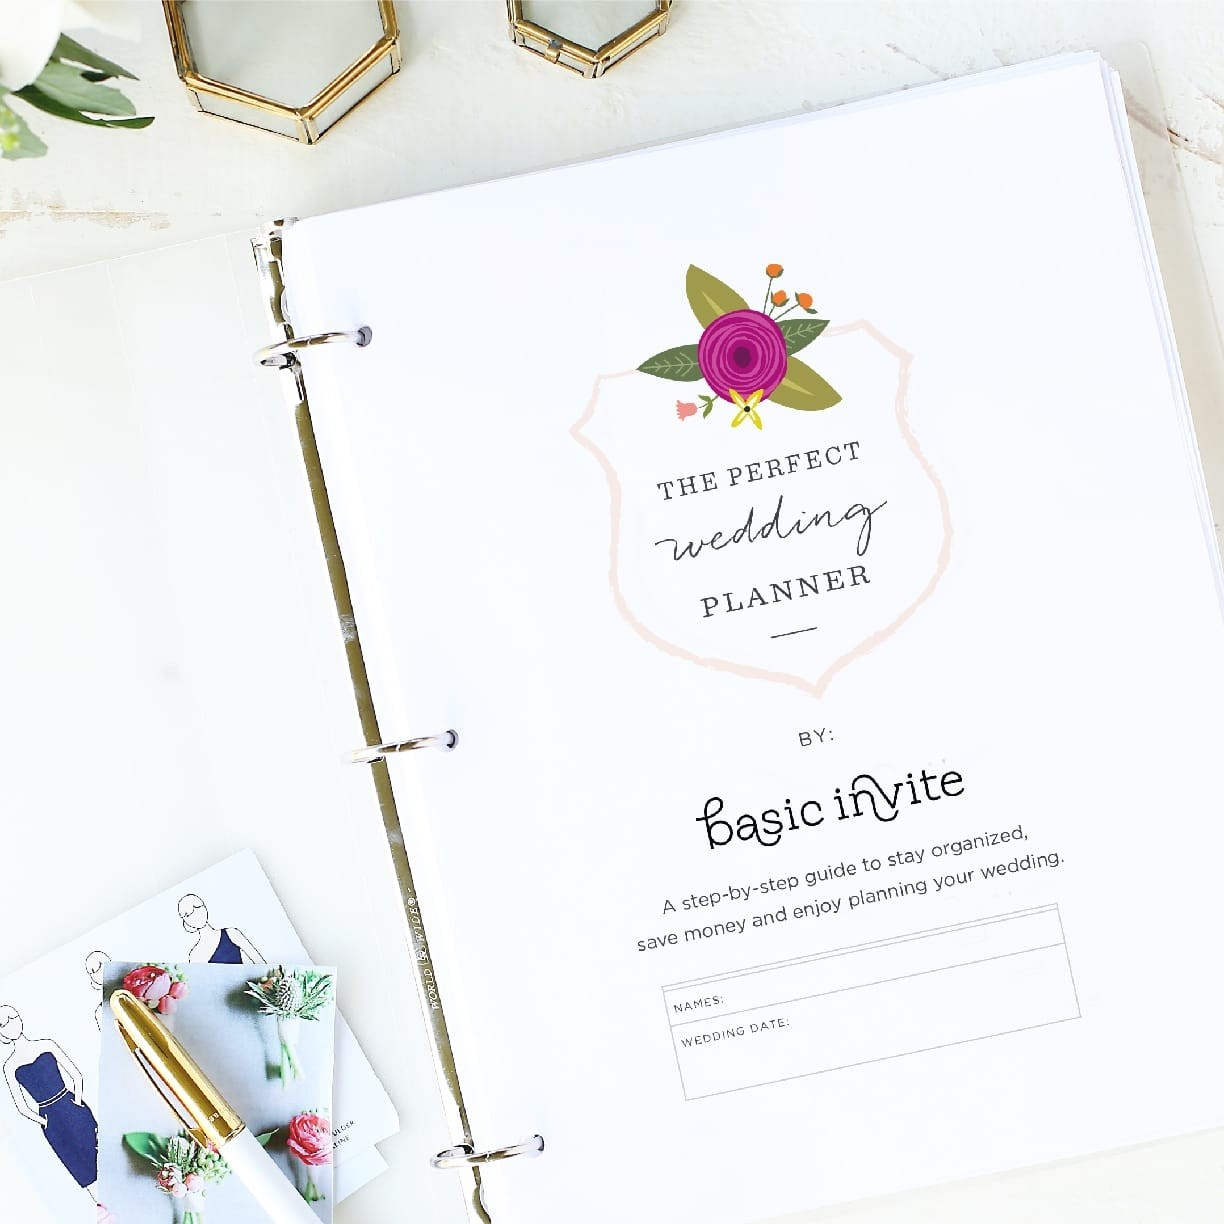 Wedding planner printable by basic invite free wedding planner printable junglespirit Images